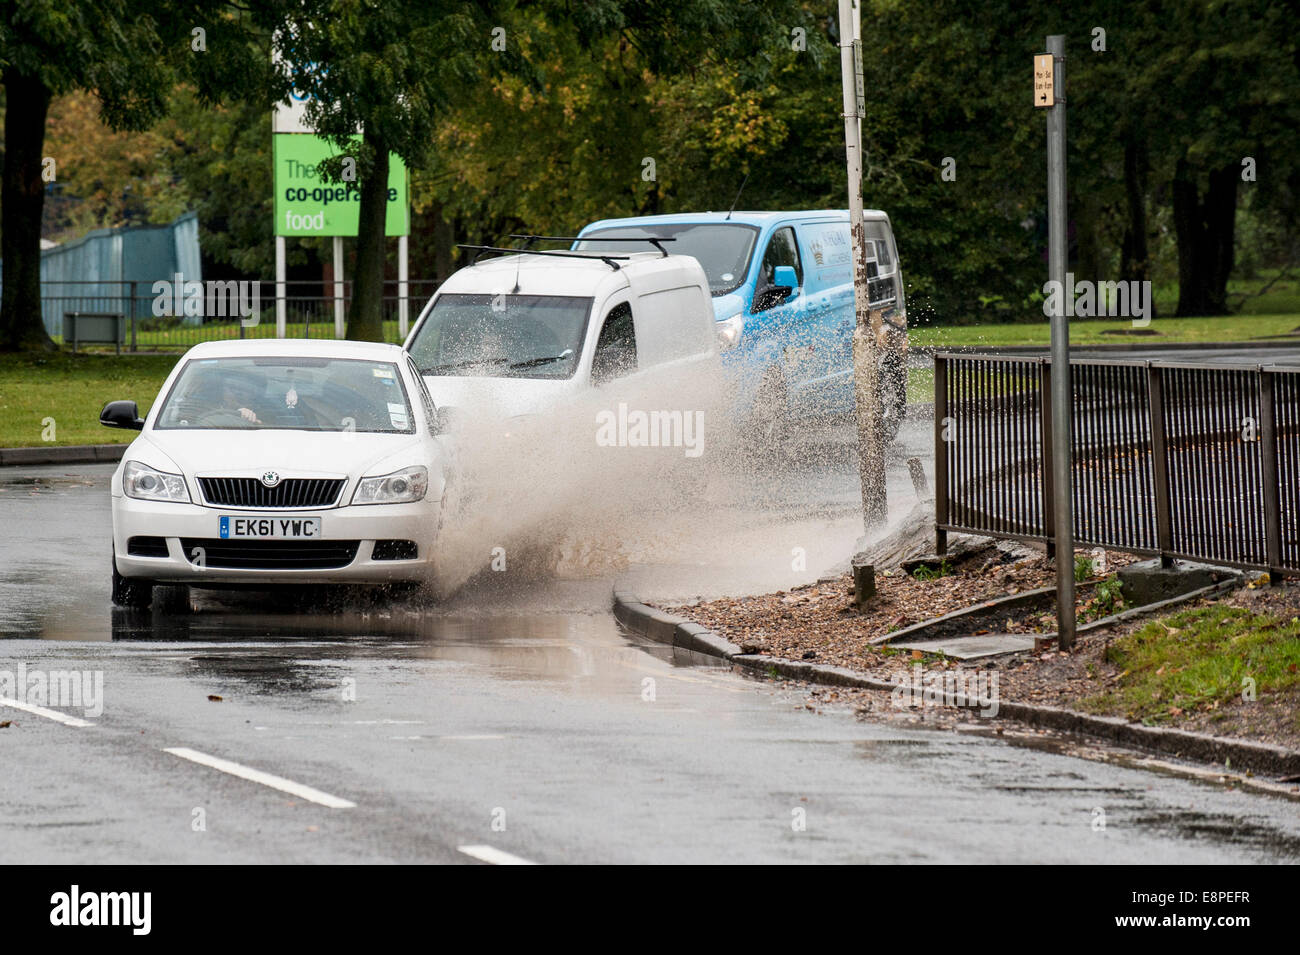 Essex, UK. 13th October, 2014.  Vehicles driving through flooded roads in Basildon, Essex after overnight torrential - Stock Image